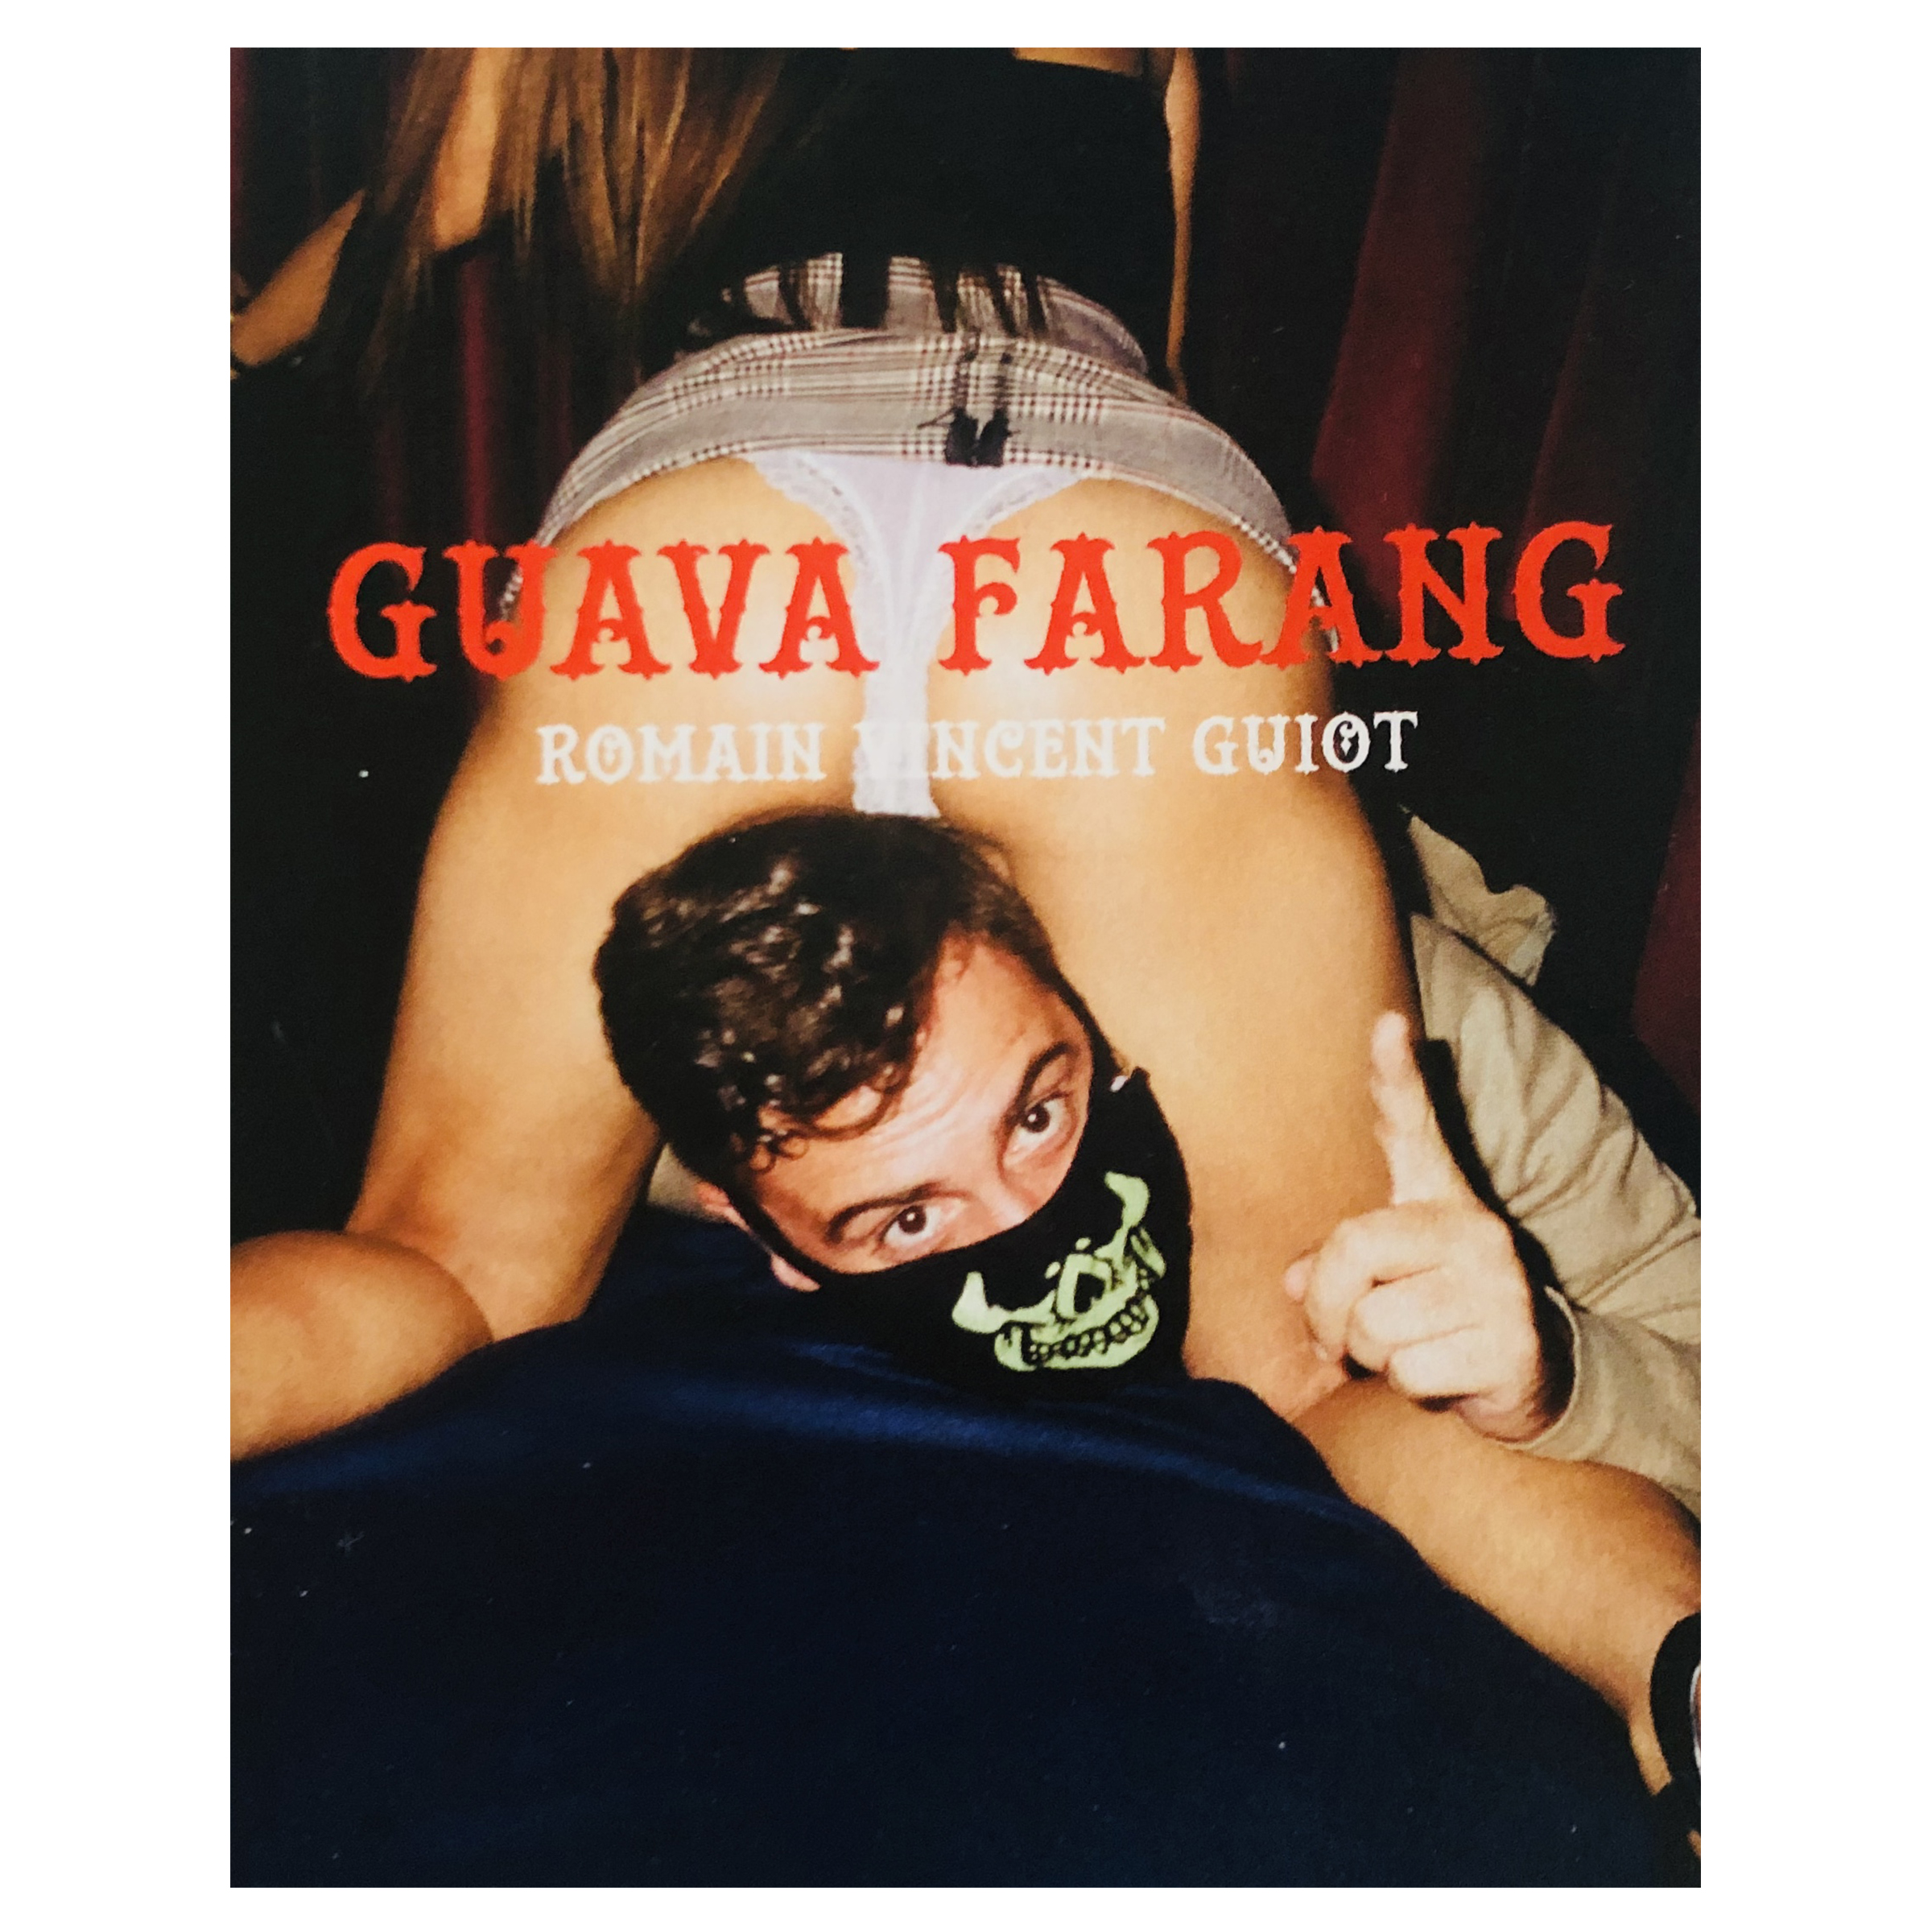 Guava Farang - Romain Vincent Guiot